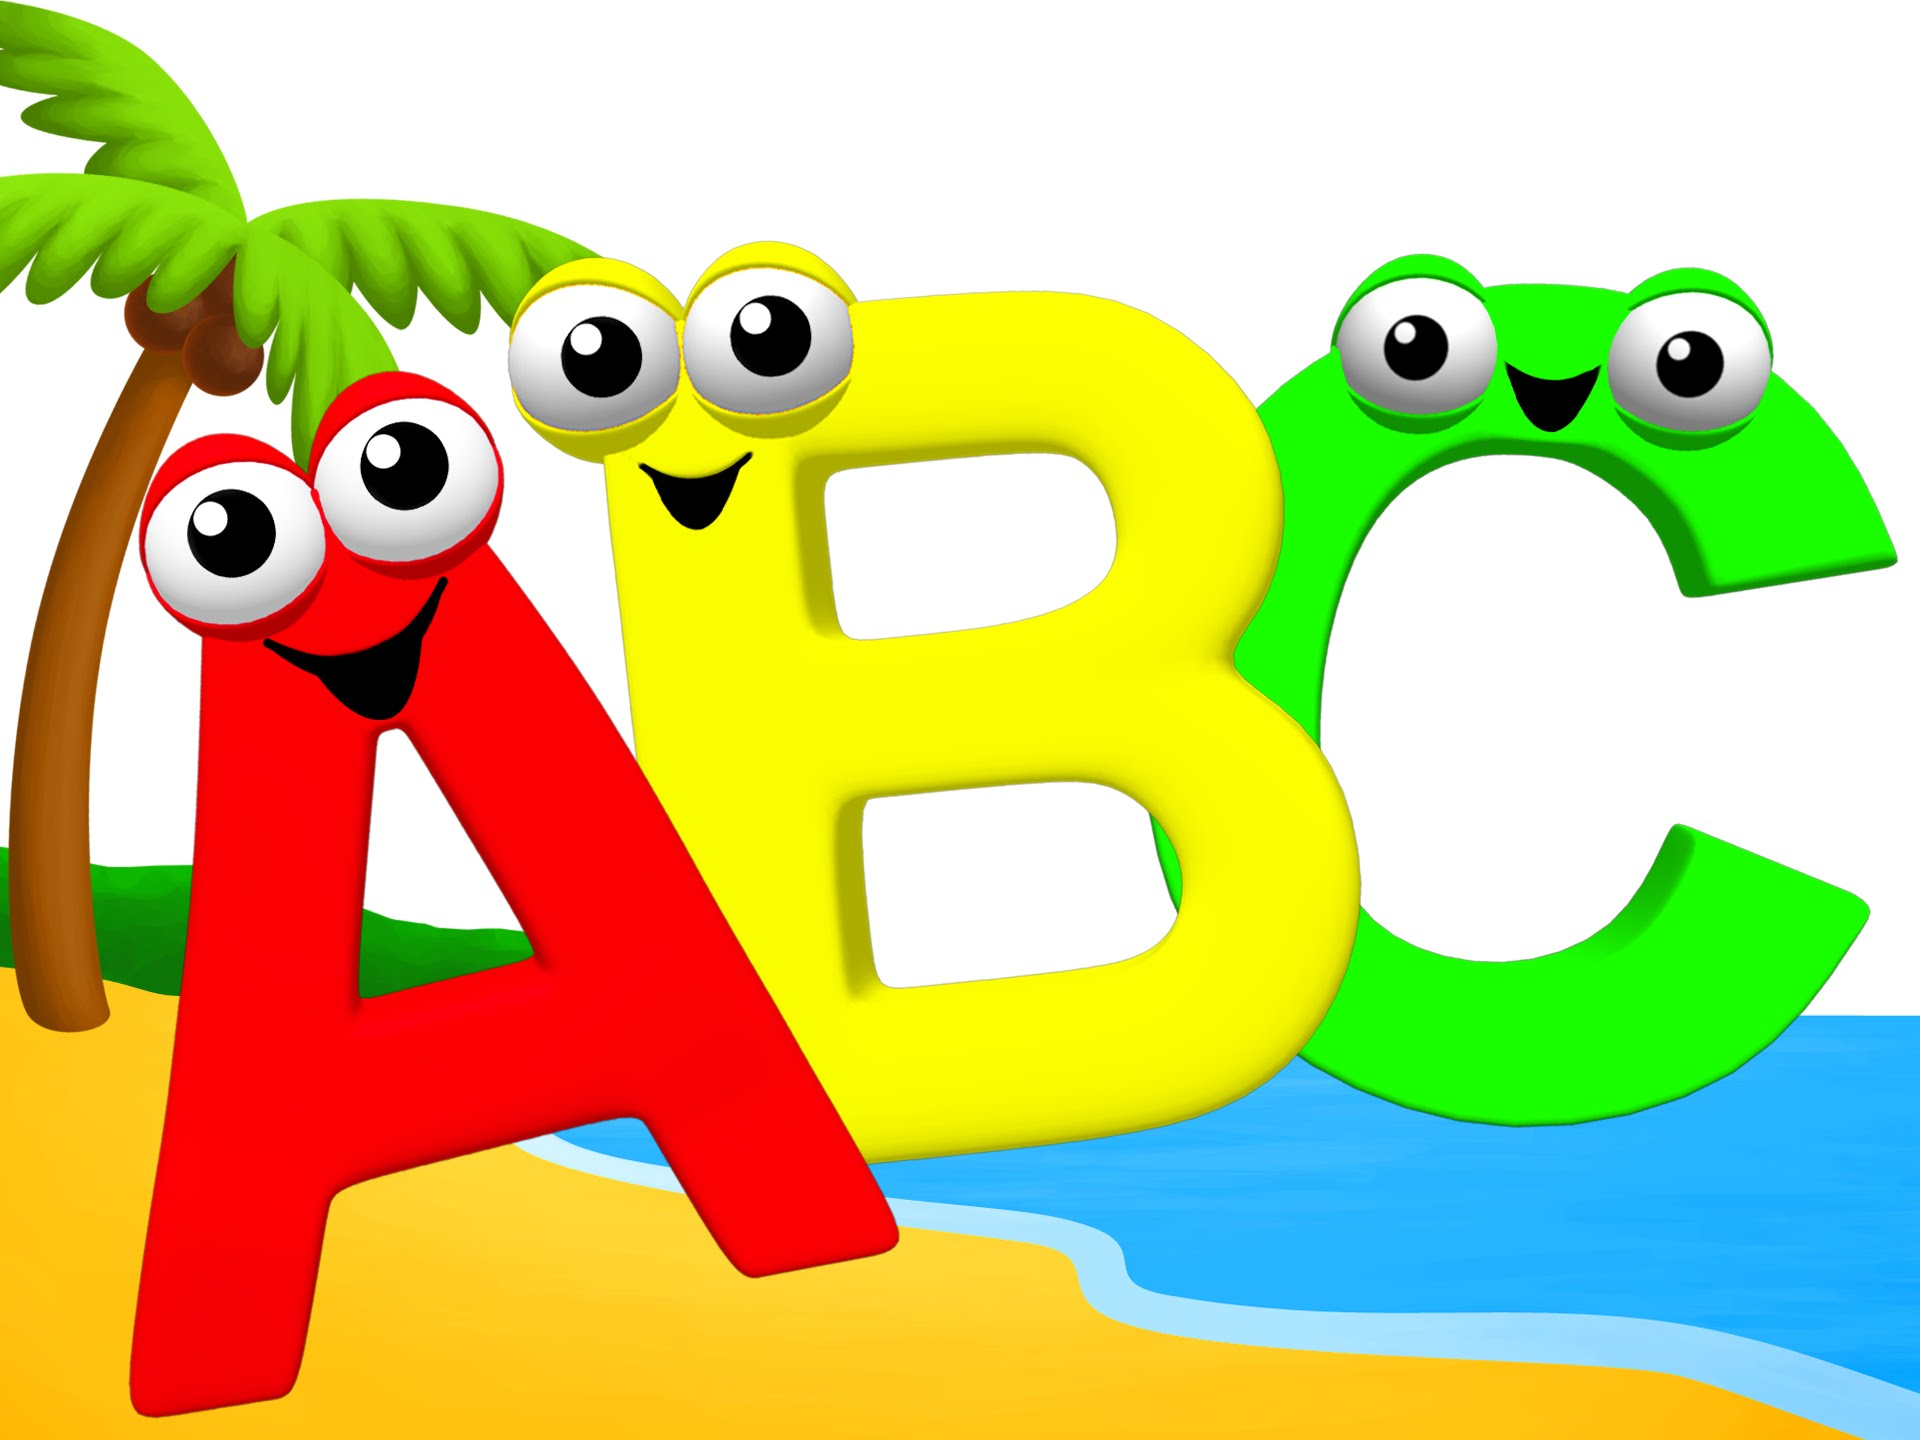 Abc clipart letter week. Letters of the alphabet